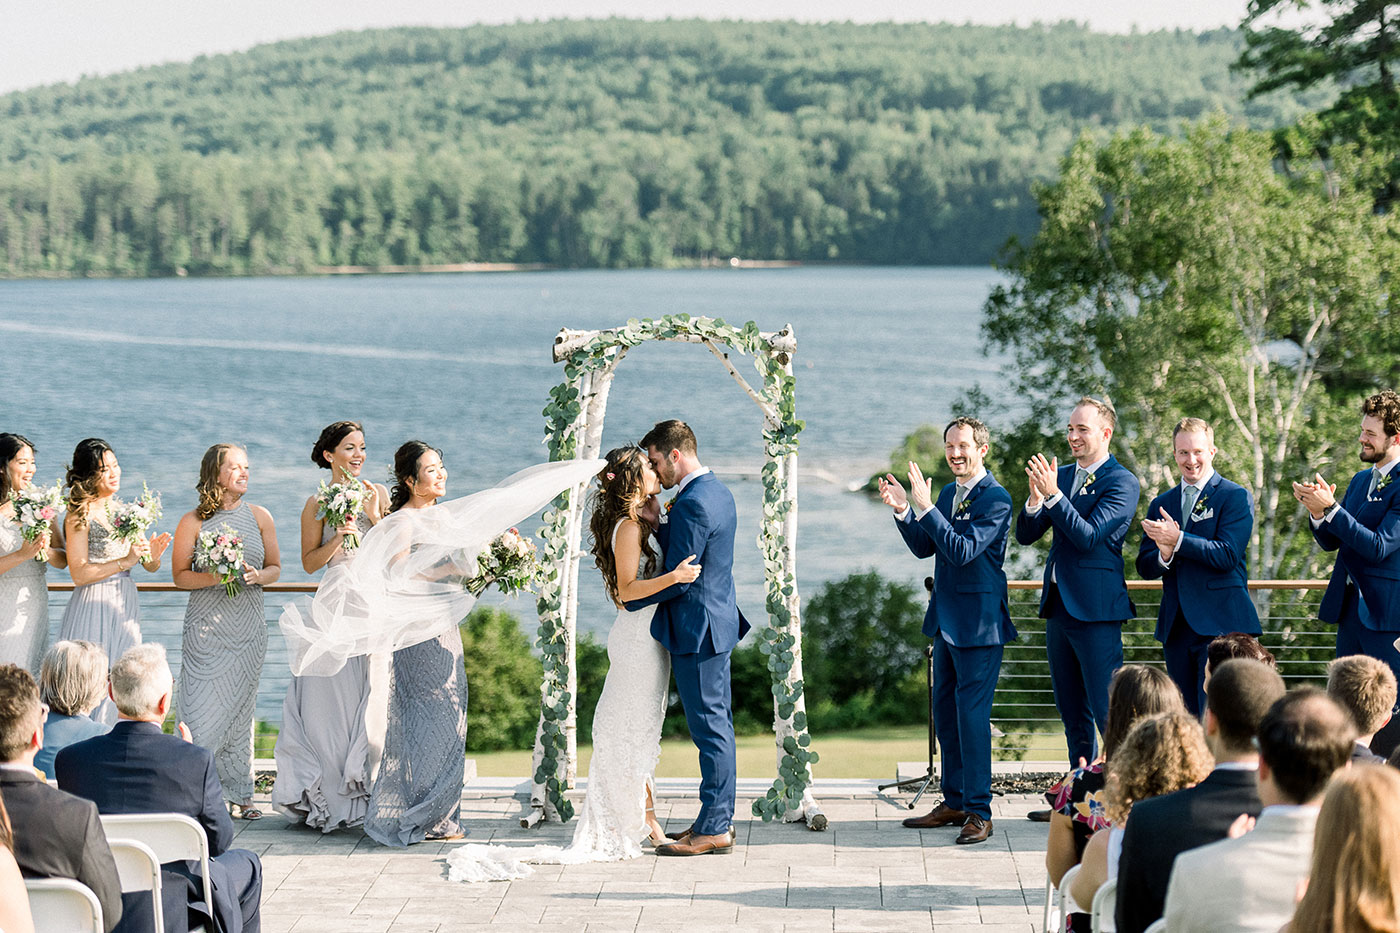 bride and groom share kiss at wedding  on lake